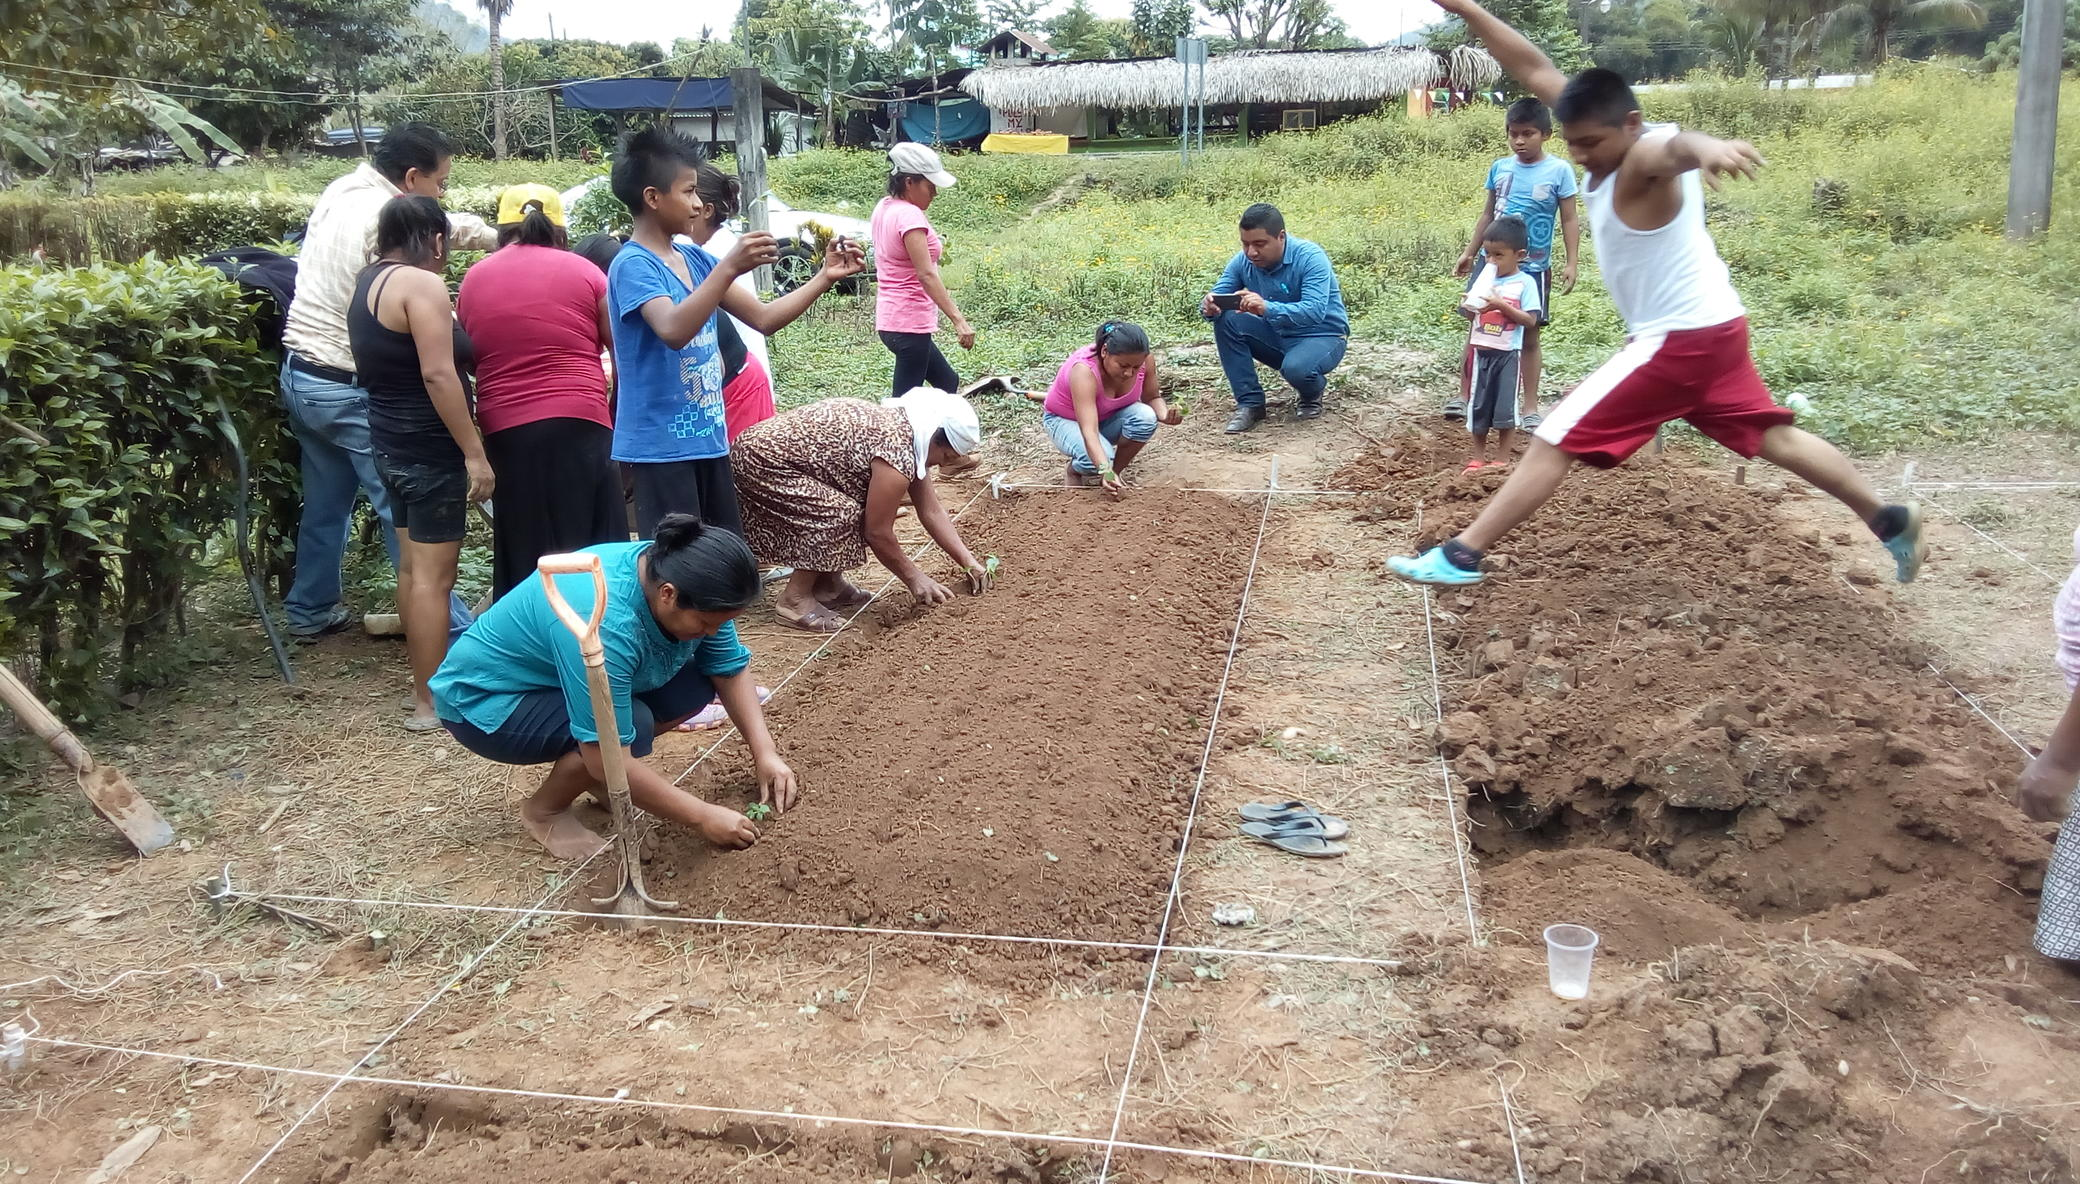 Home Gardens for 100 Families, Oaxaca, Mexico